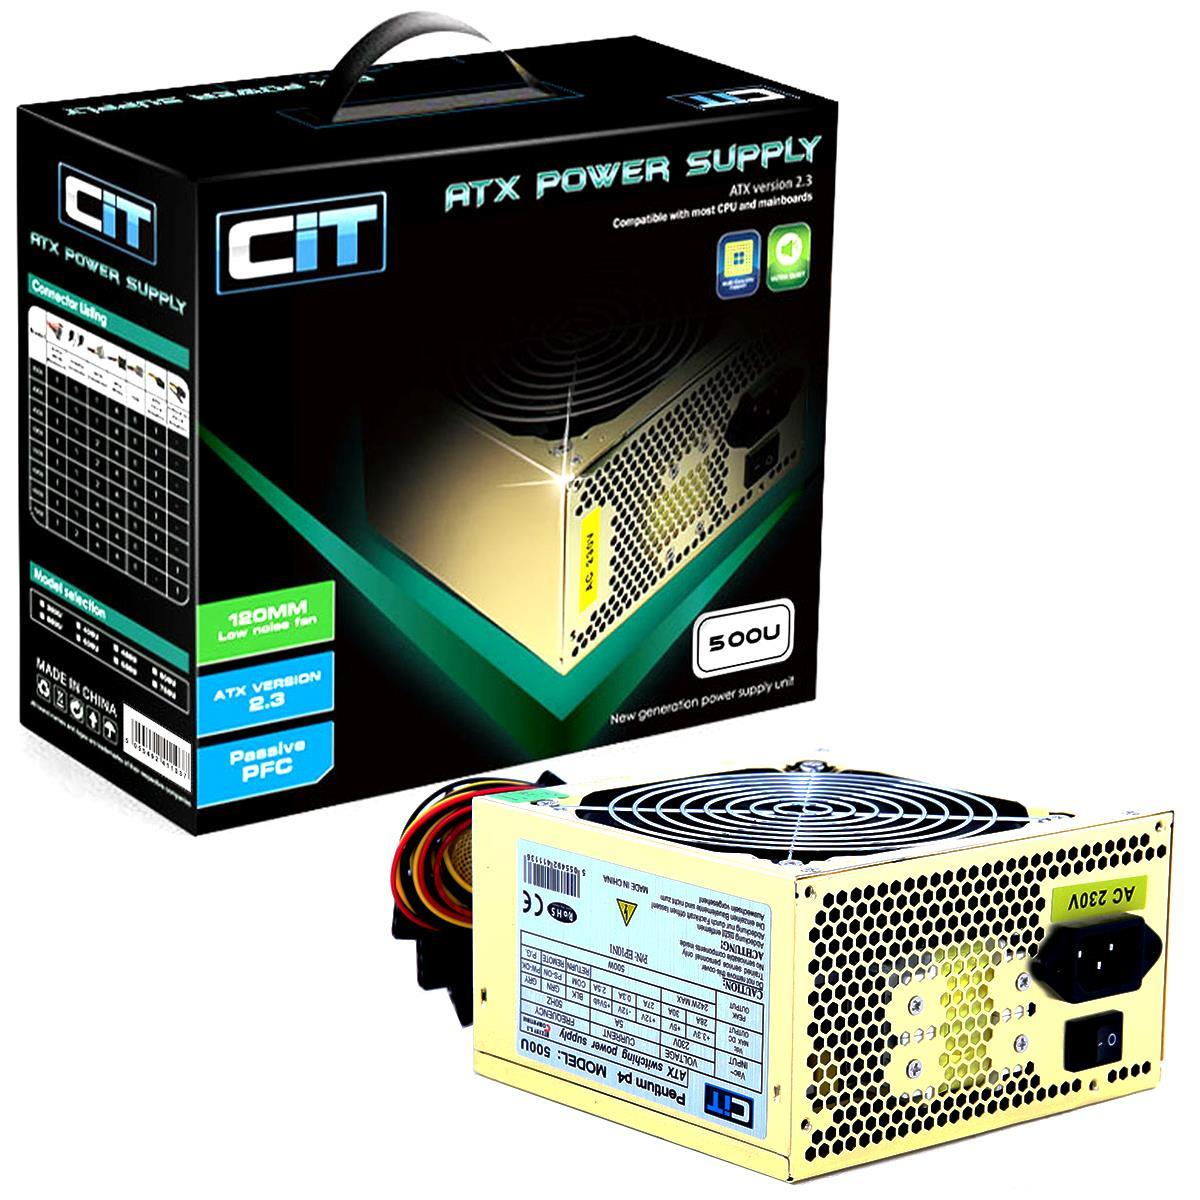 Cit 500W Gold Edition PSU